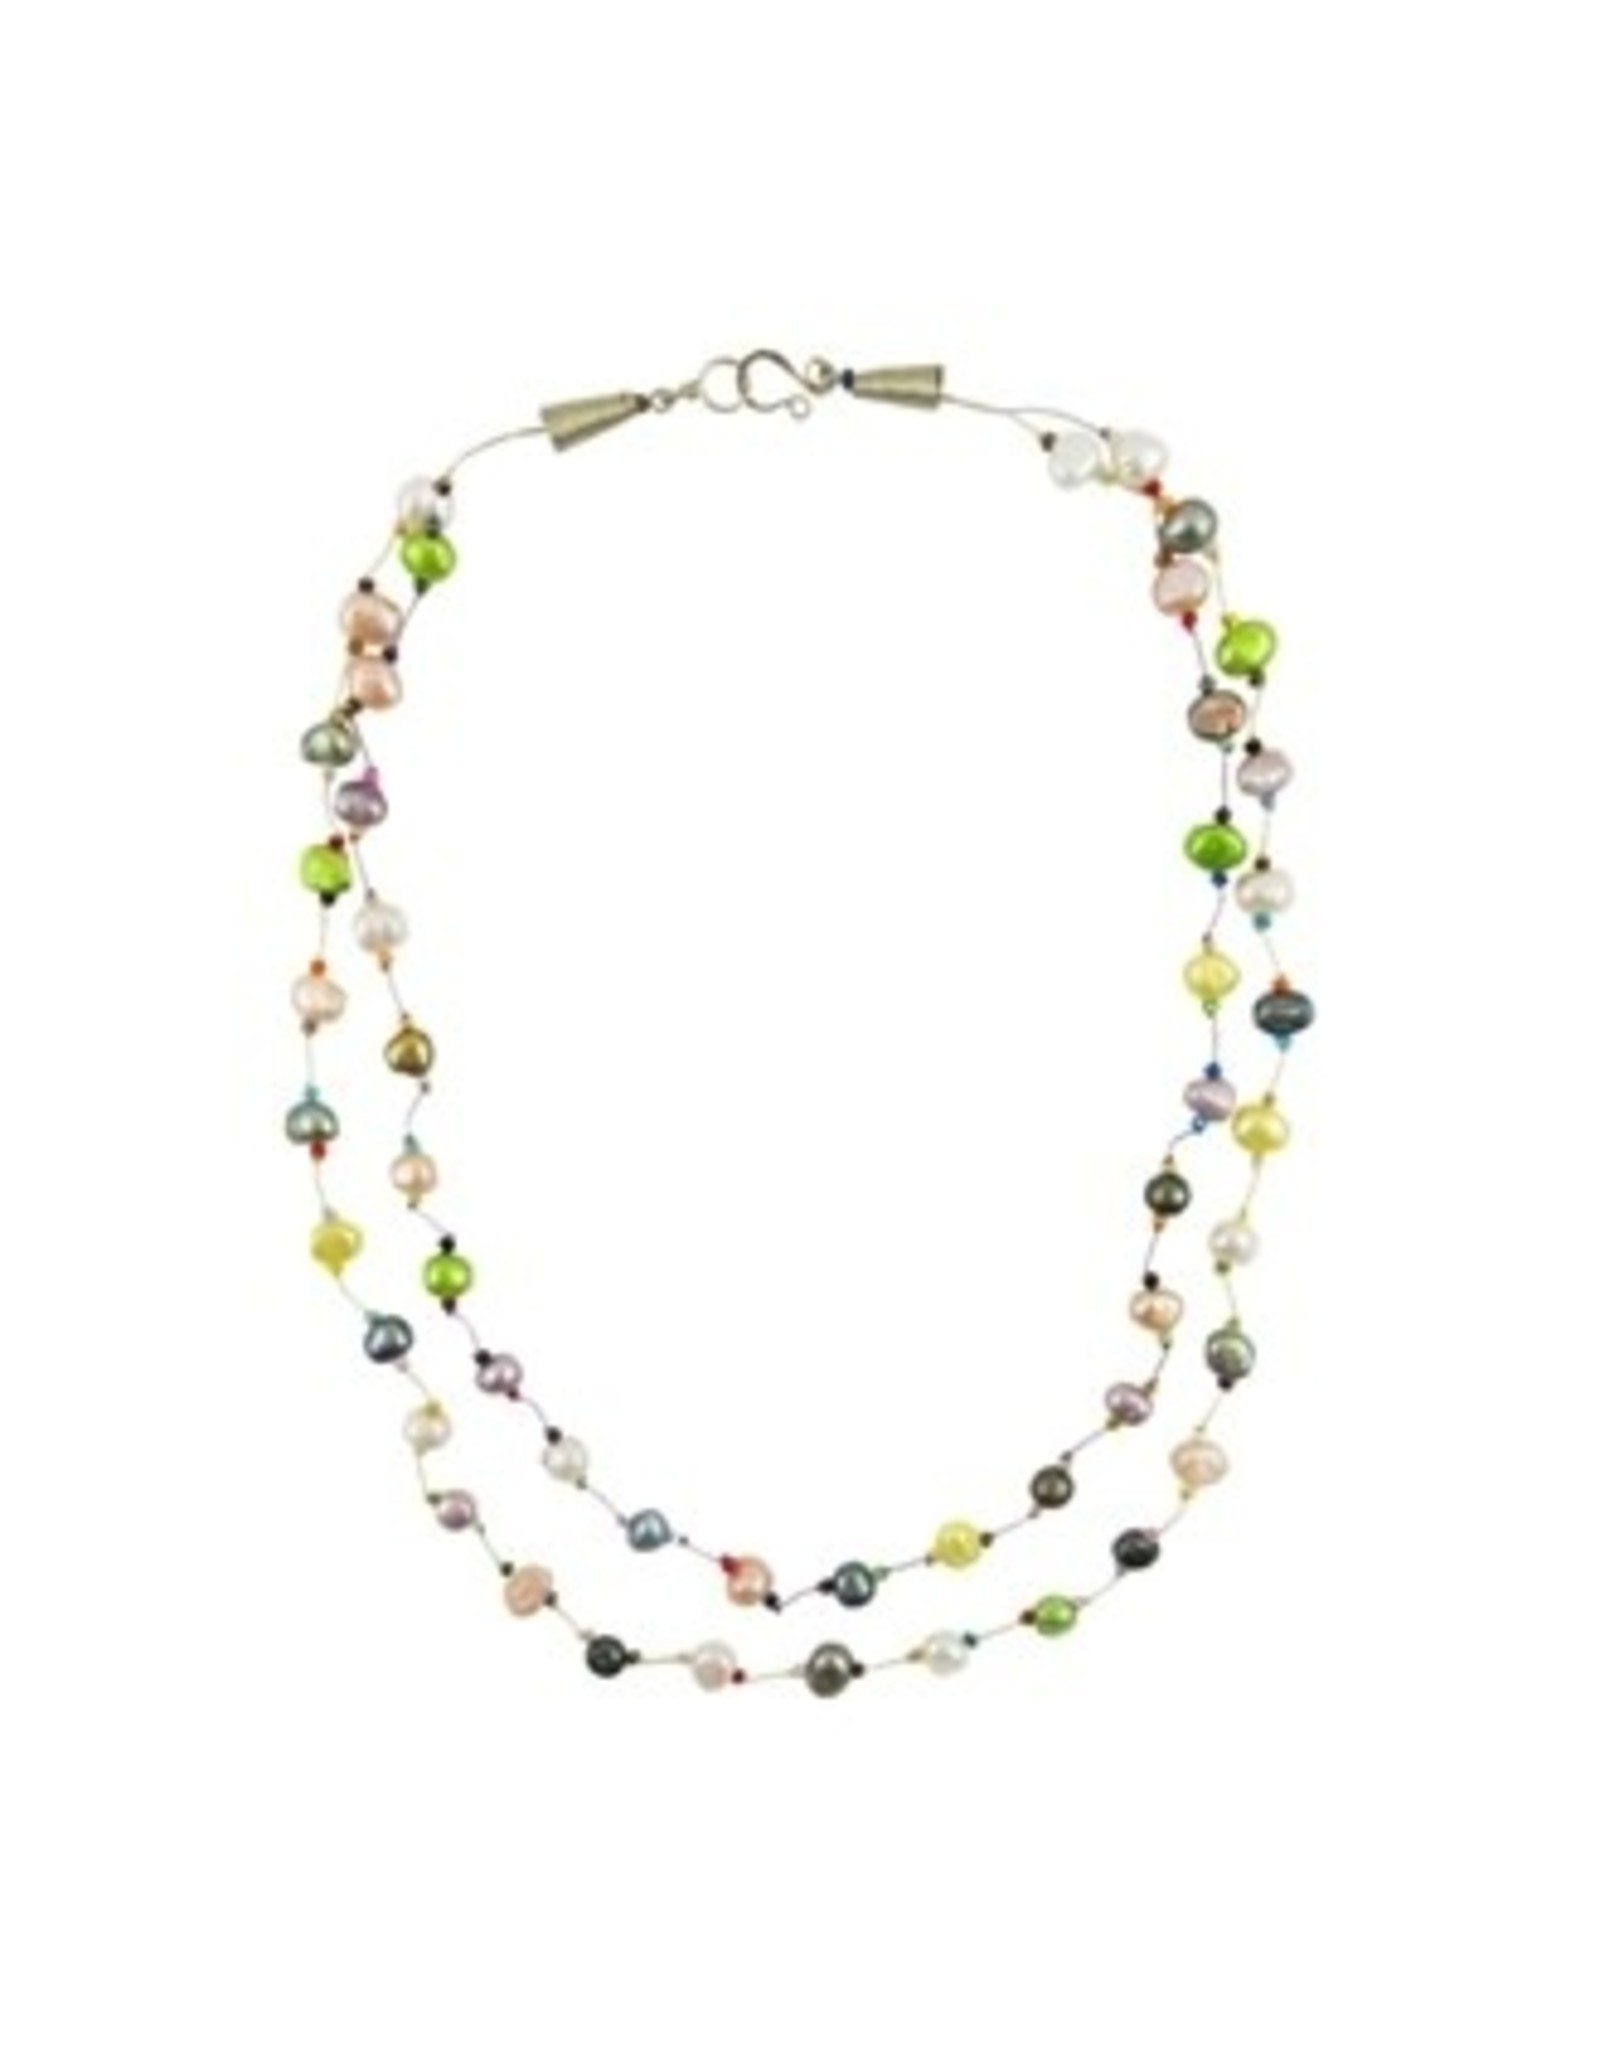 Layered Pearl Circus Necklace, 2 strand